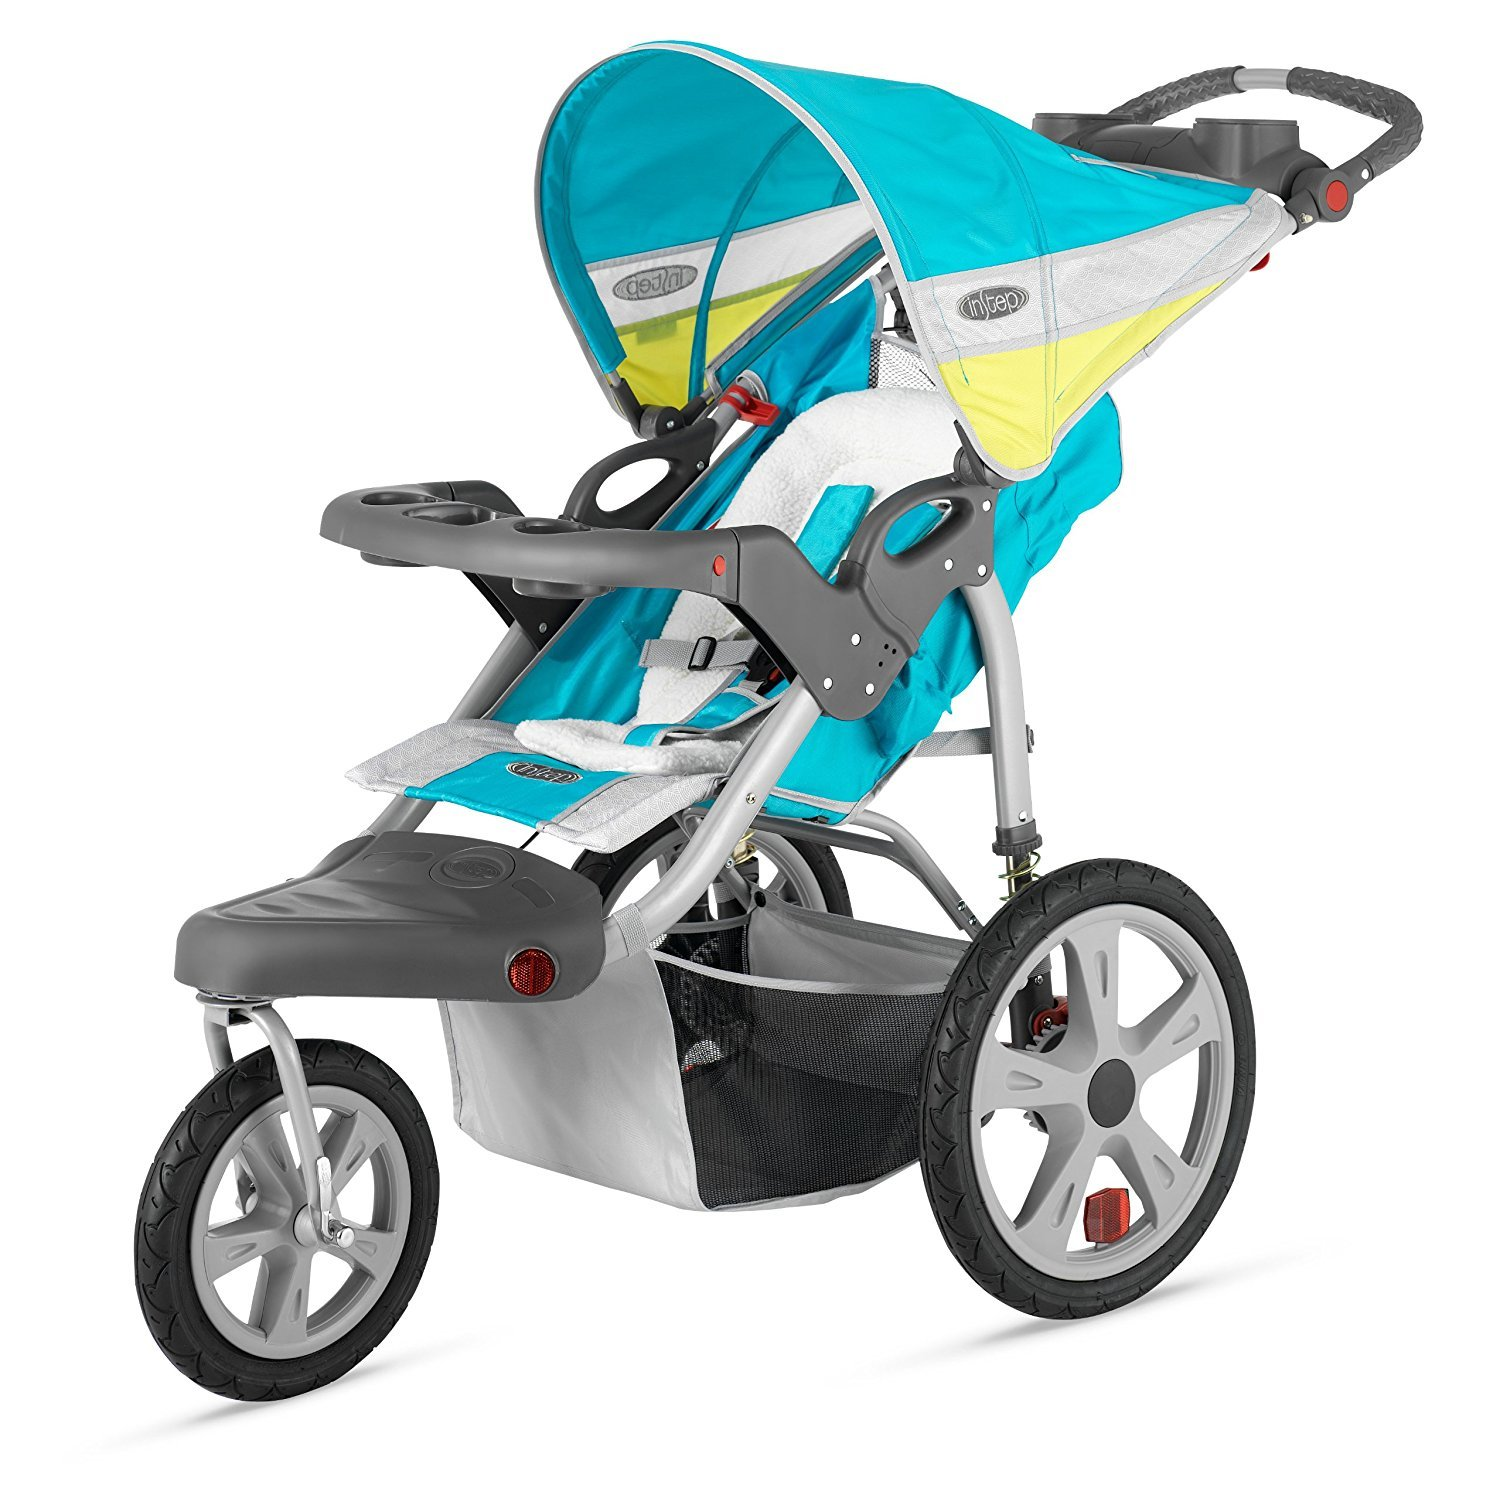 Premium Baby Stroller Jogger With Pneumatic Air Tires , Large Canopy and Storage Basket For Infants, Toddlers And Kids, Blue-Yellow